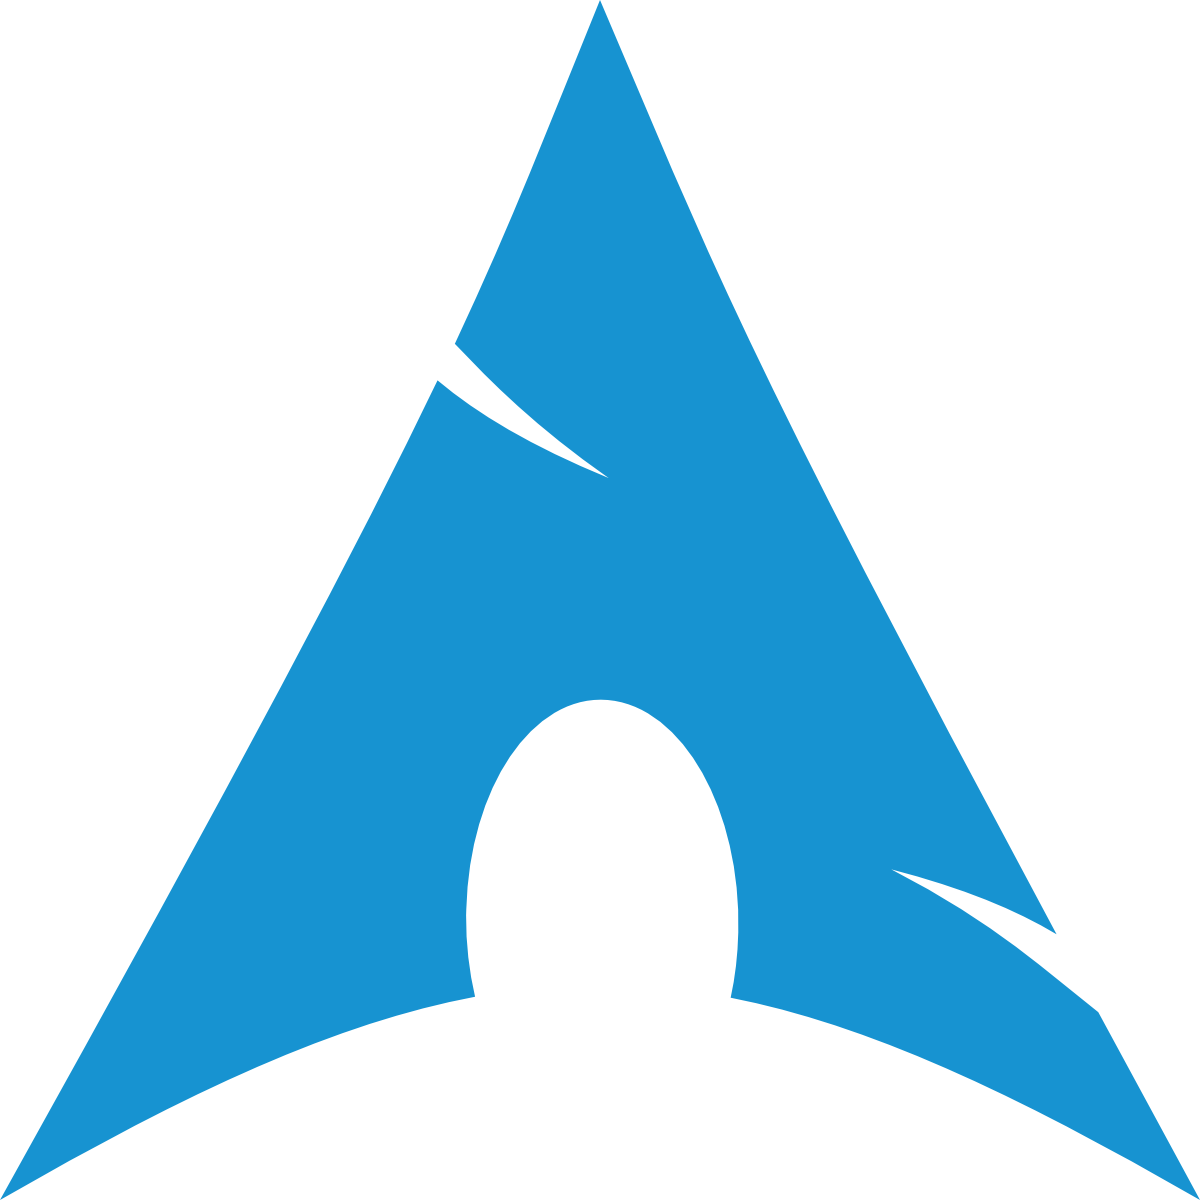 Tgz Arch Linux Free Download PNG HQ PNG Image